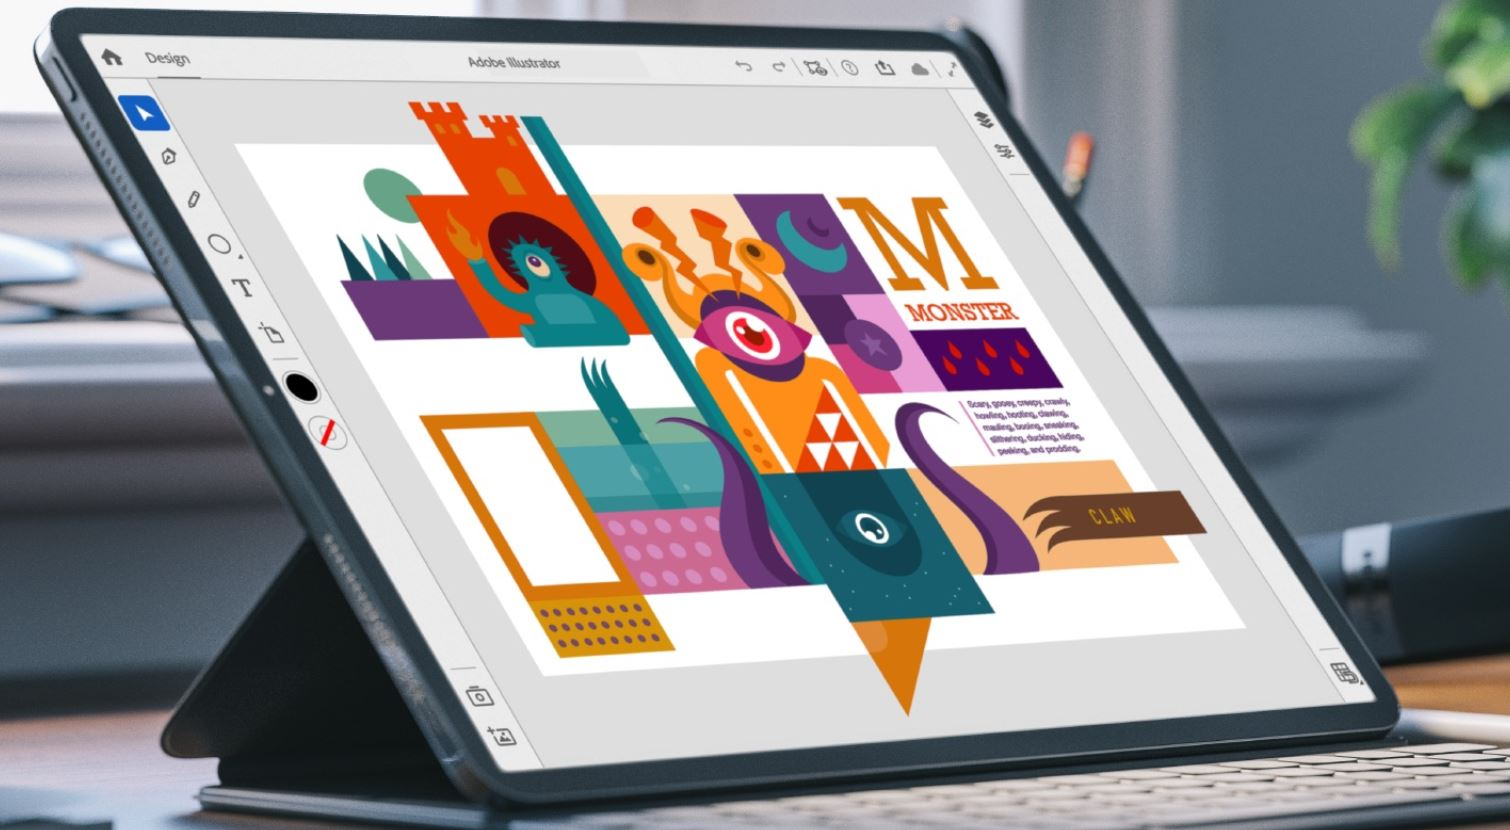 Adobe's full Photoshop app is now available for iPad, Illustrator is coming soon 1